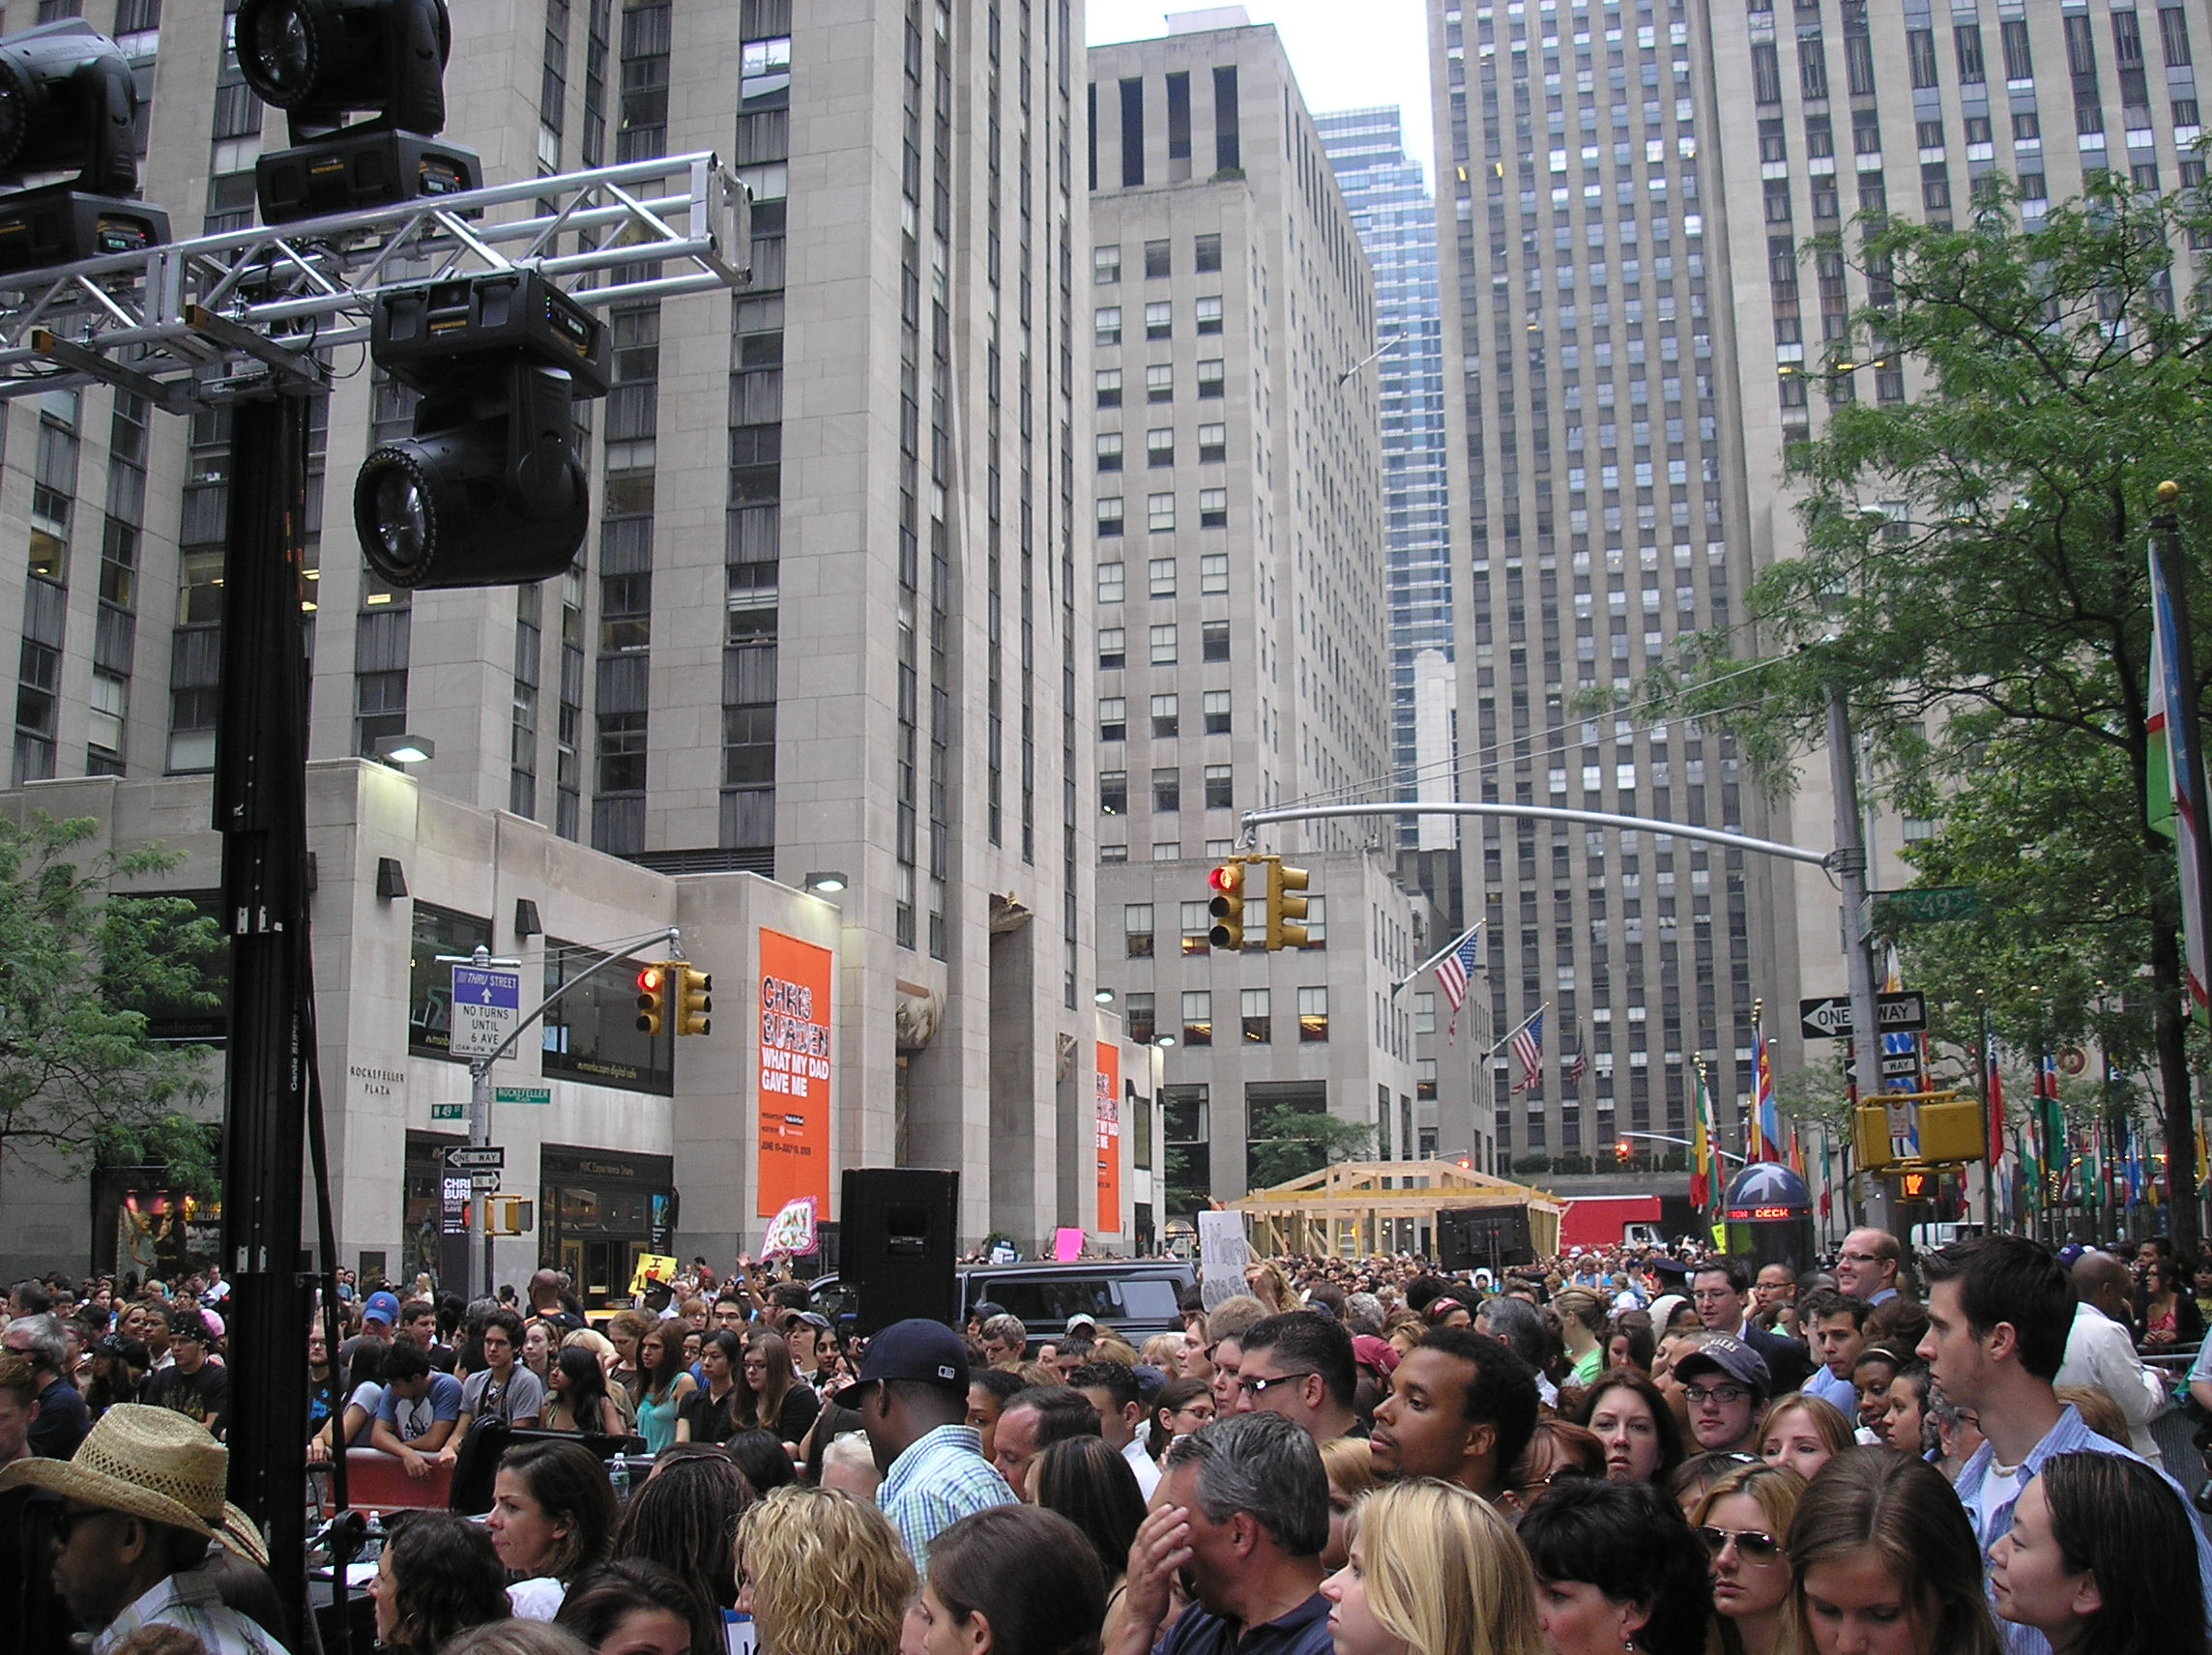 Coldplay fans at 30 Rock.